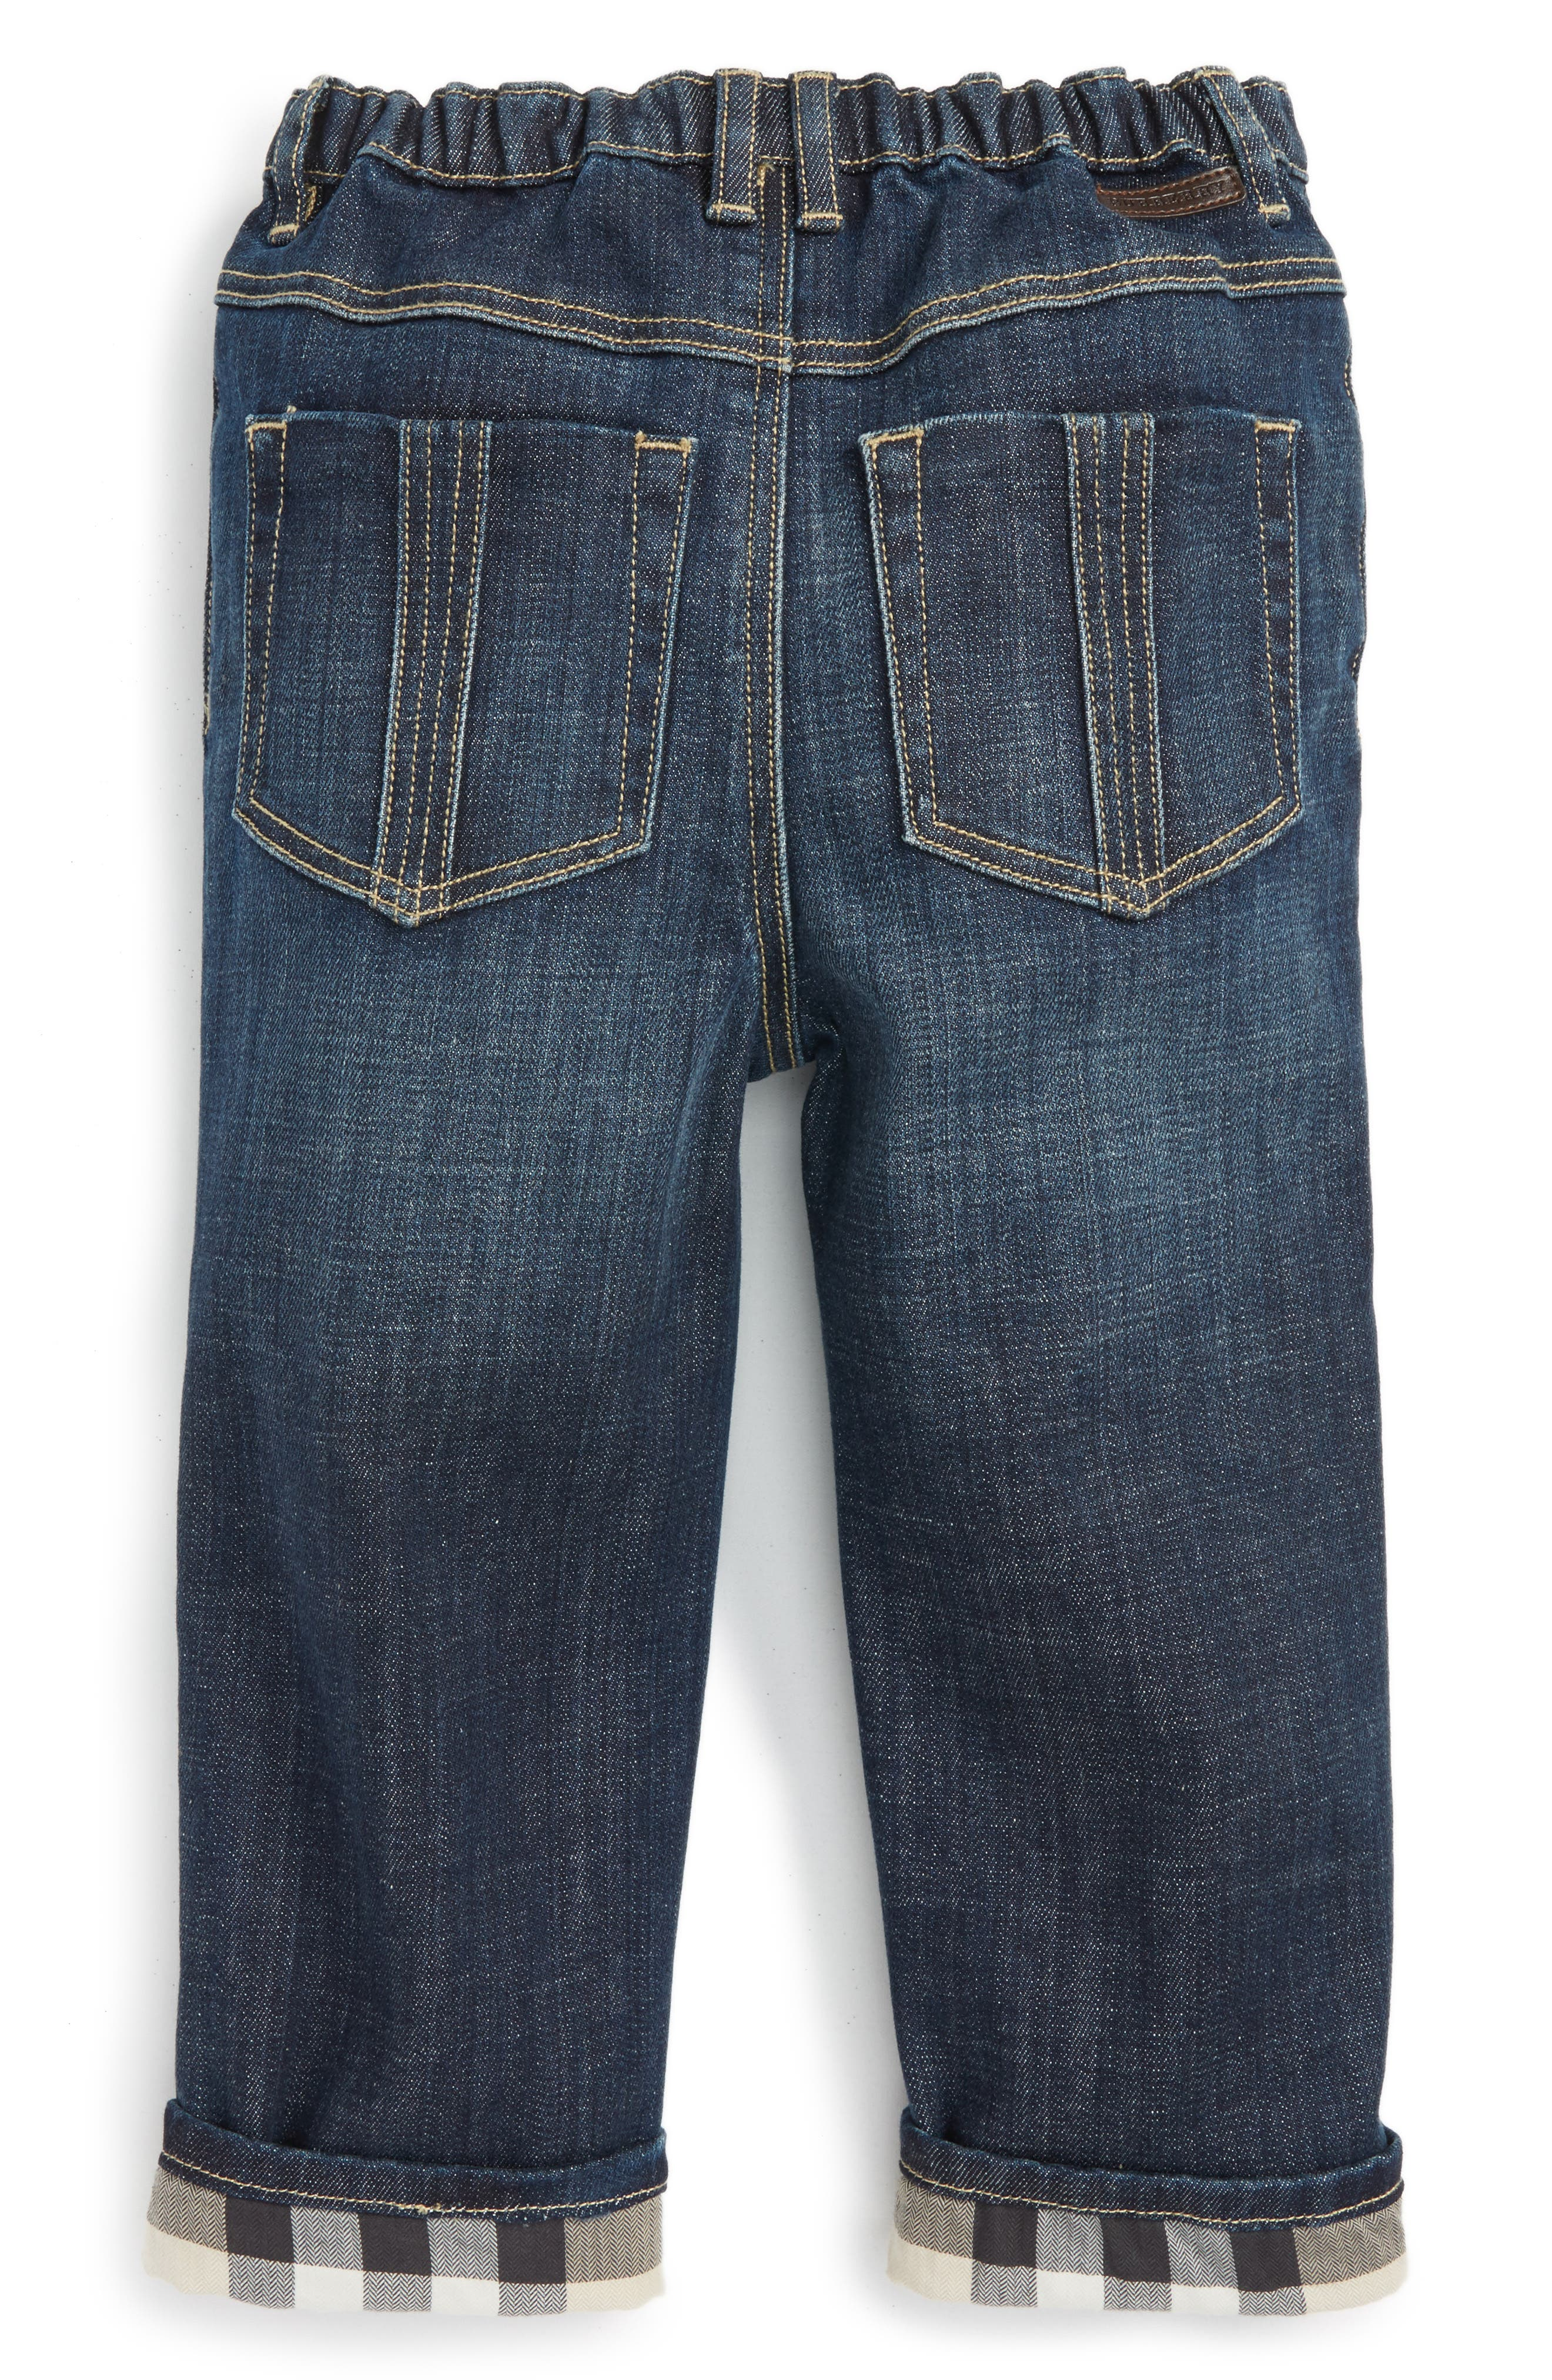 BURBERRY, Pierre Check Lined Jeans, Main thumbnail 1, color, 400